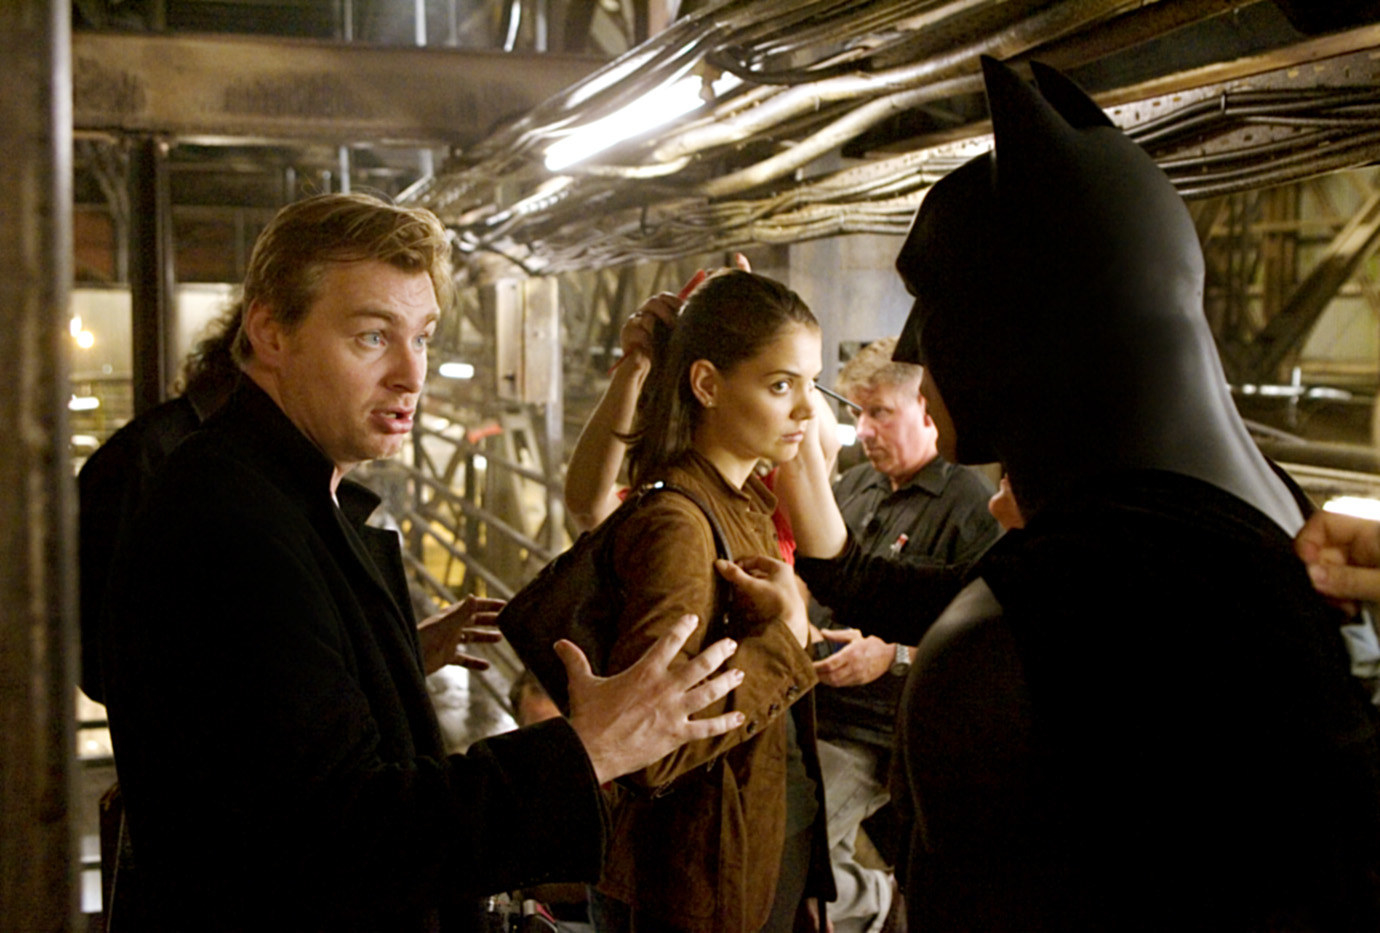 Photo of Christopher Nolan directing Christian Bale and Katie Holmes on the set of Batman Begins